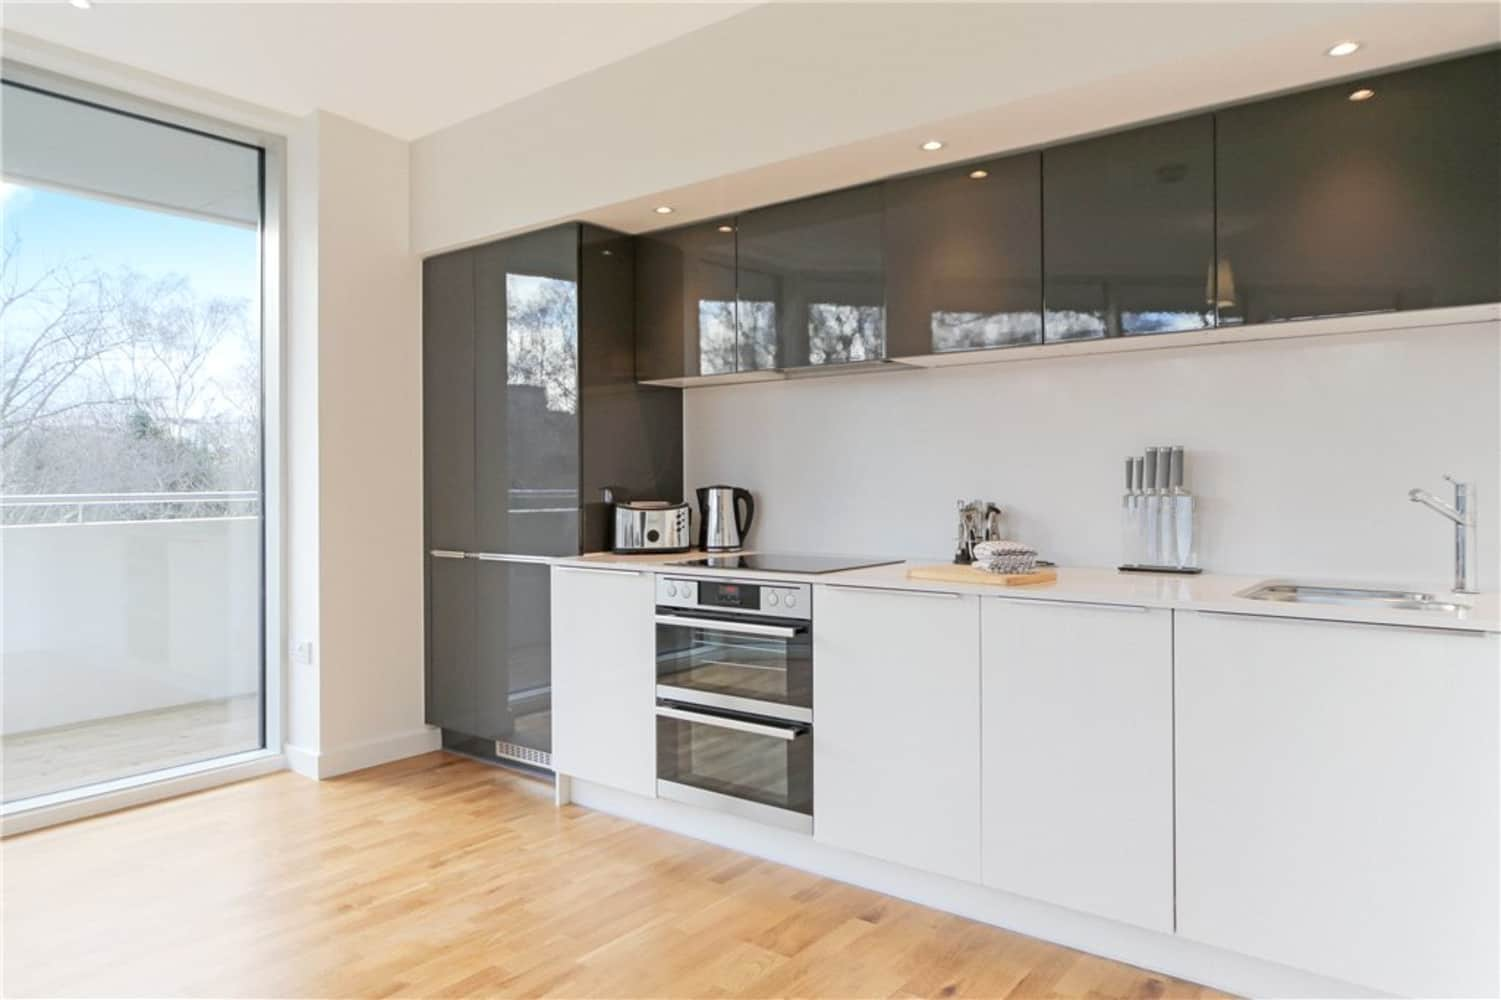 Apartment Chiswick, W4 - Edmunds House Colonial Drive W4 - 04